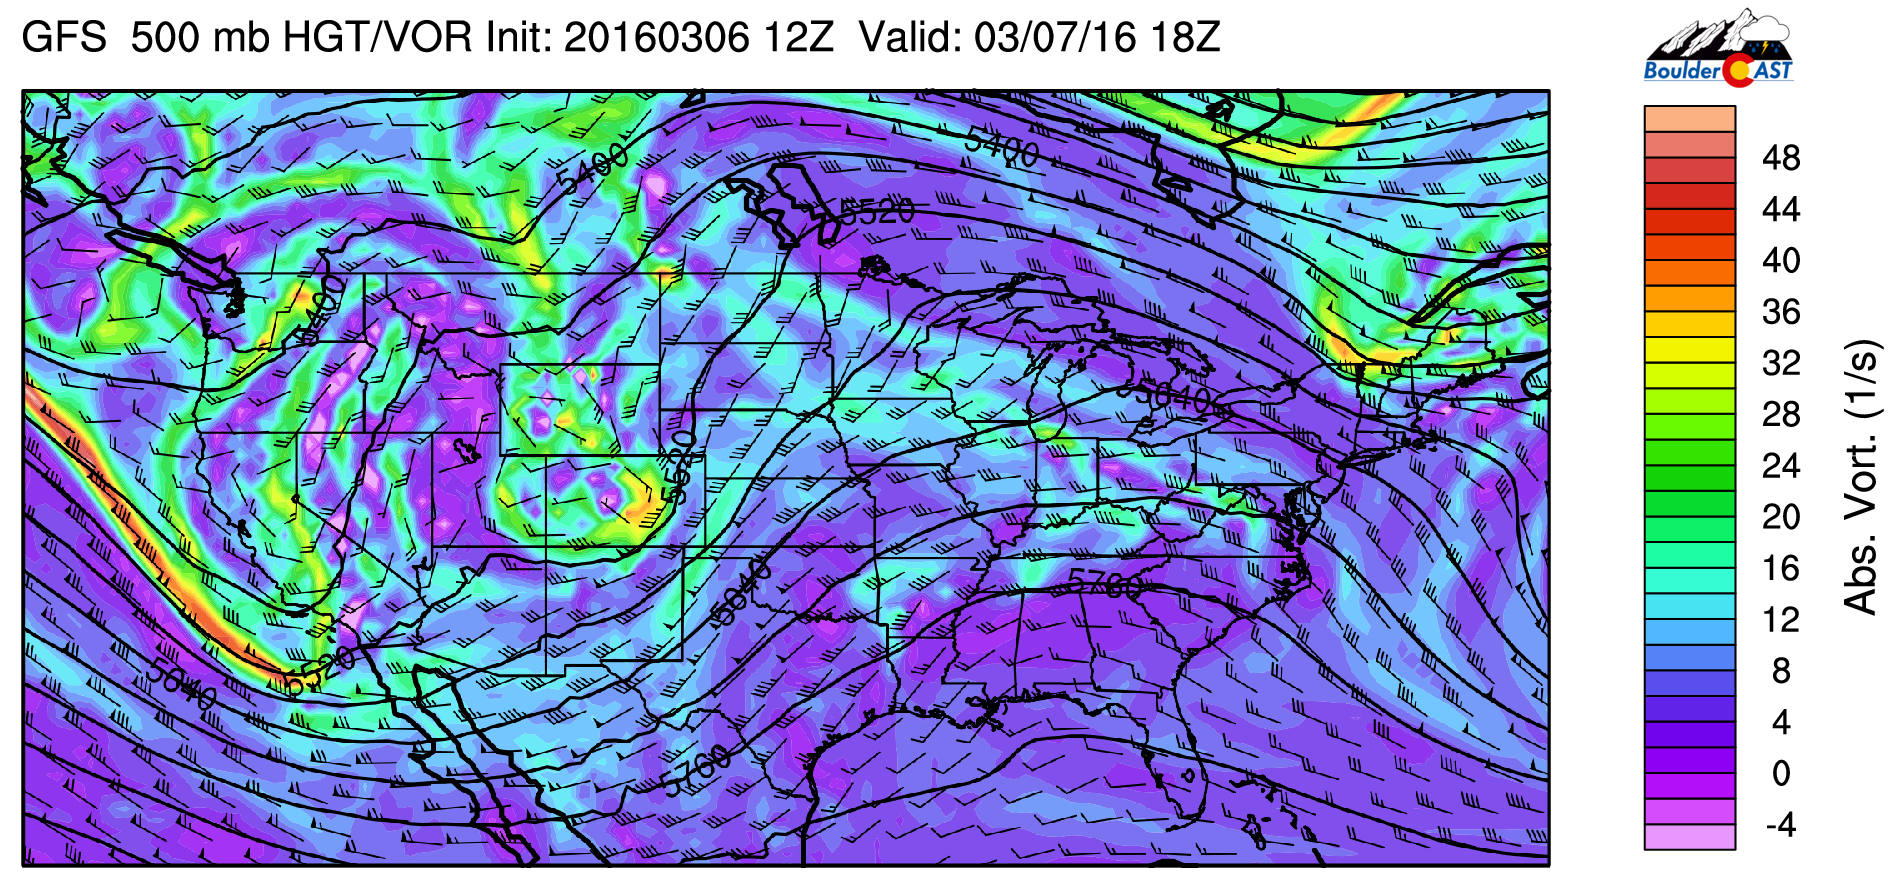 GFS 500 mb absolute vorticity for today